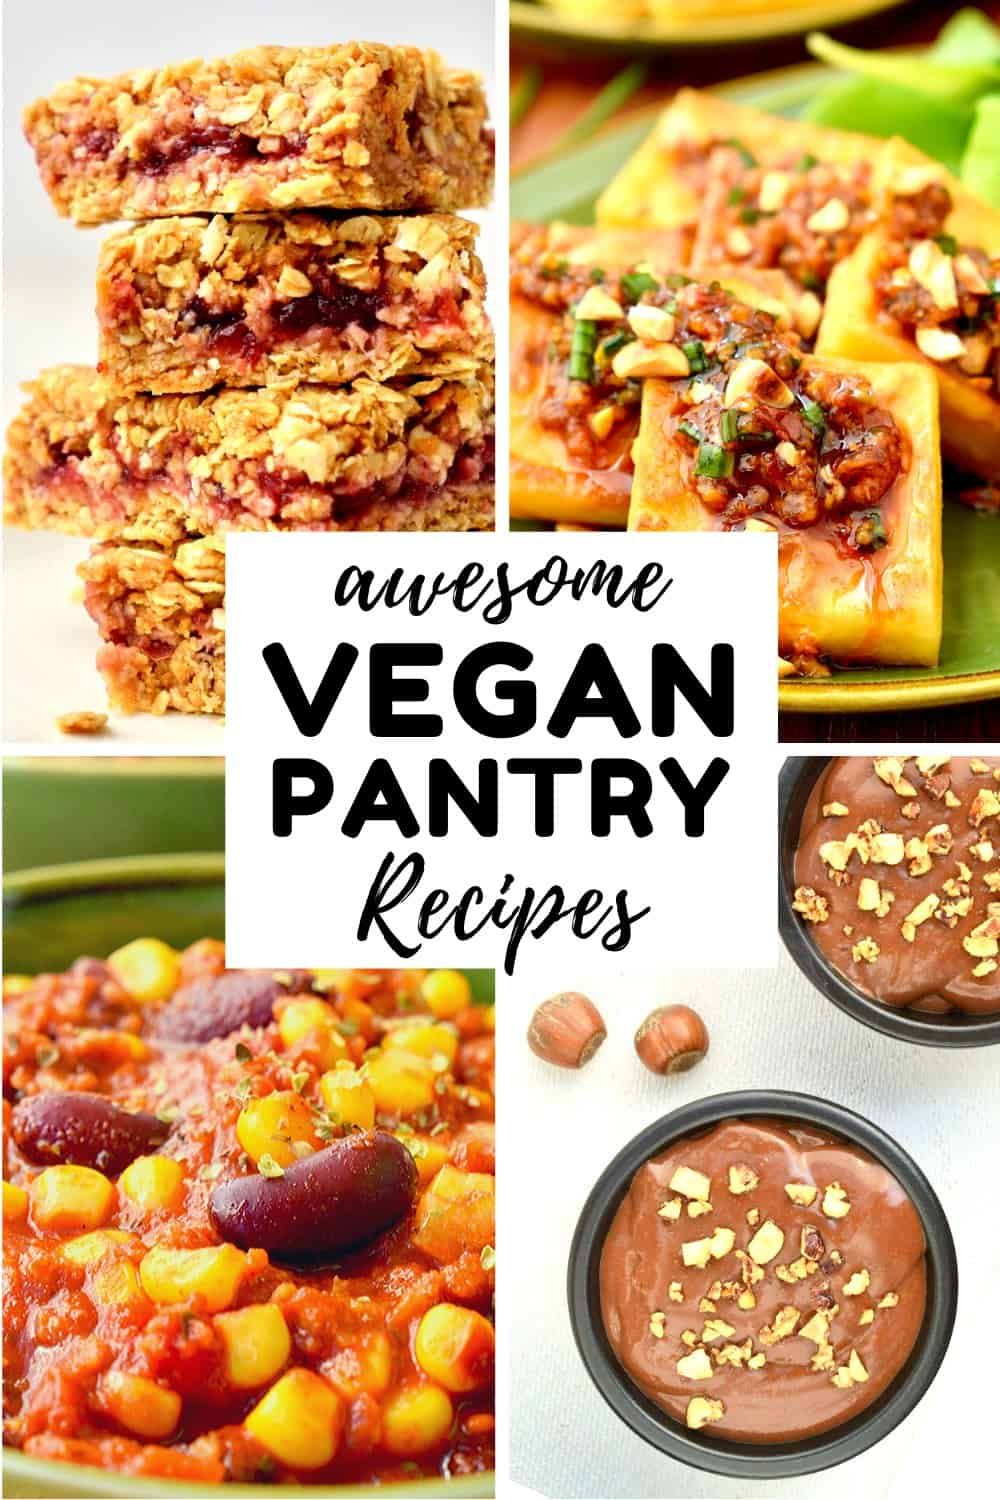 A collage of vegan pantry recipes - a stack of oat bars, a plate of burmese tofu, a colourful bowl of chilli, and chocolate pudding pots.